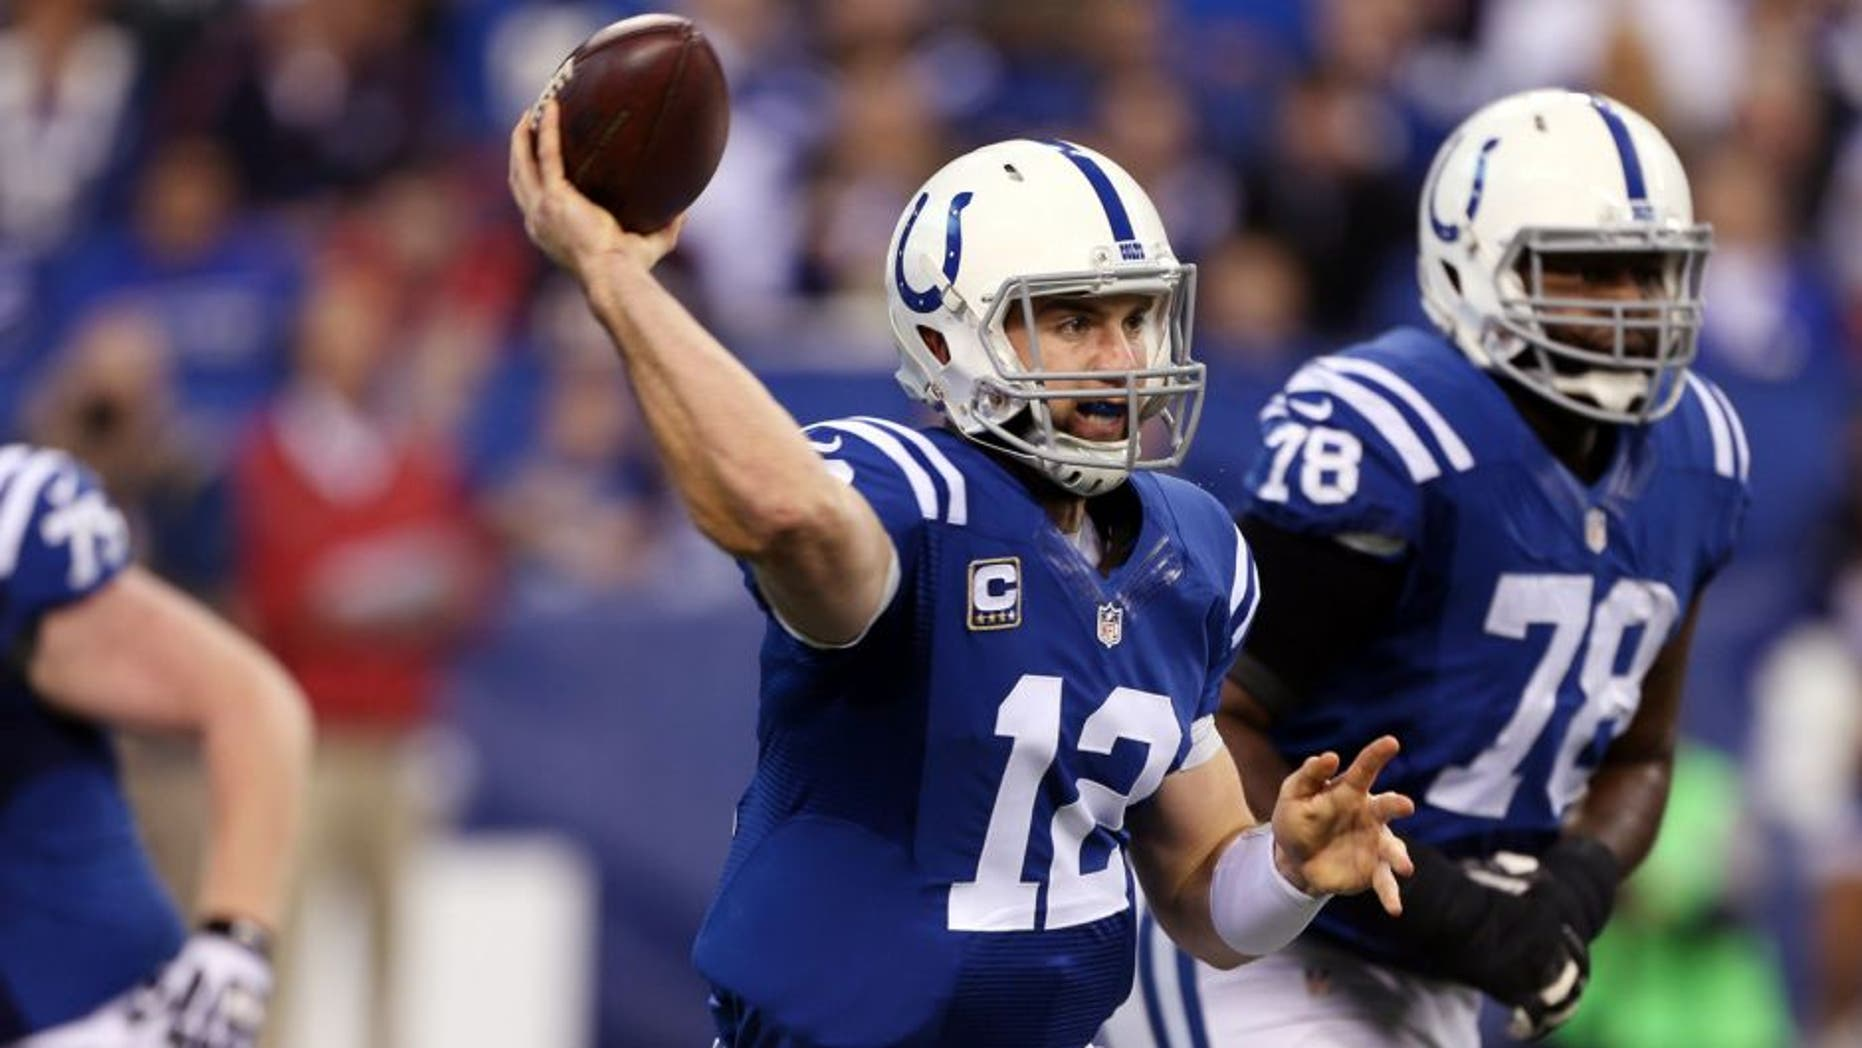 Dec 14, 2014; Indianapolis, IN, USA; Indianapolis Colts quarterback Andrew Luck (12) throws a pass against the Houston Texans at Lucas Oil Stadium. Mandatory Credit: Brian Spurlock-USA TODAY Sports